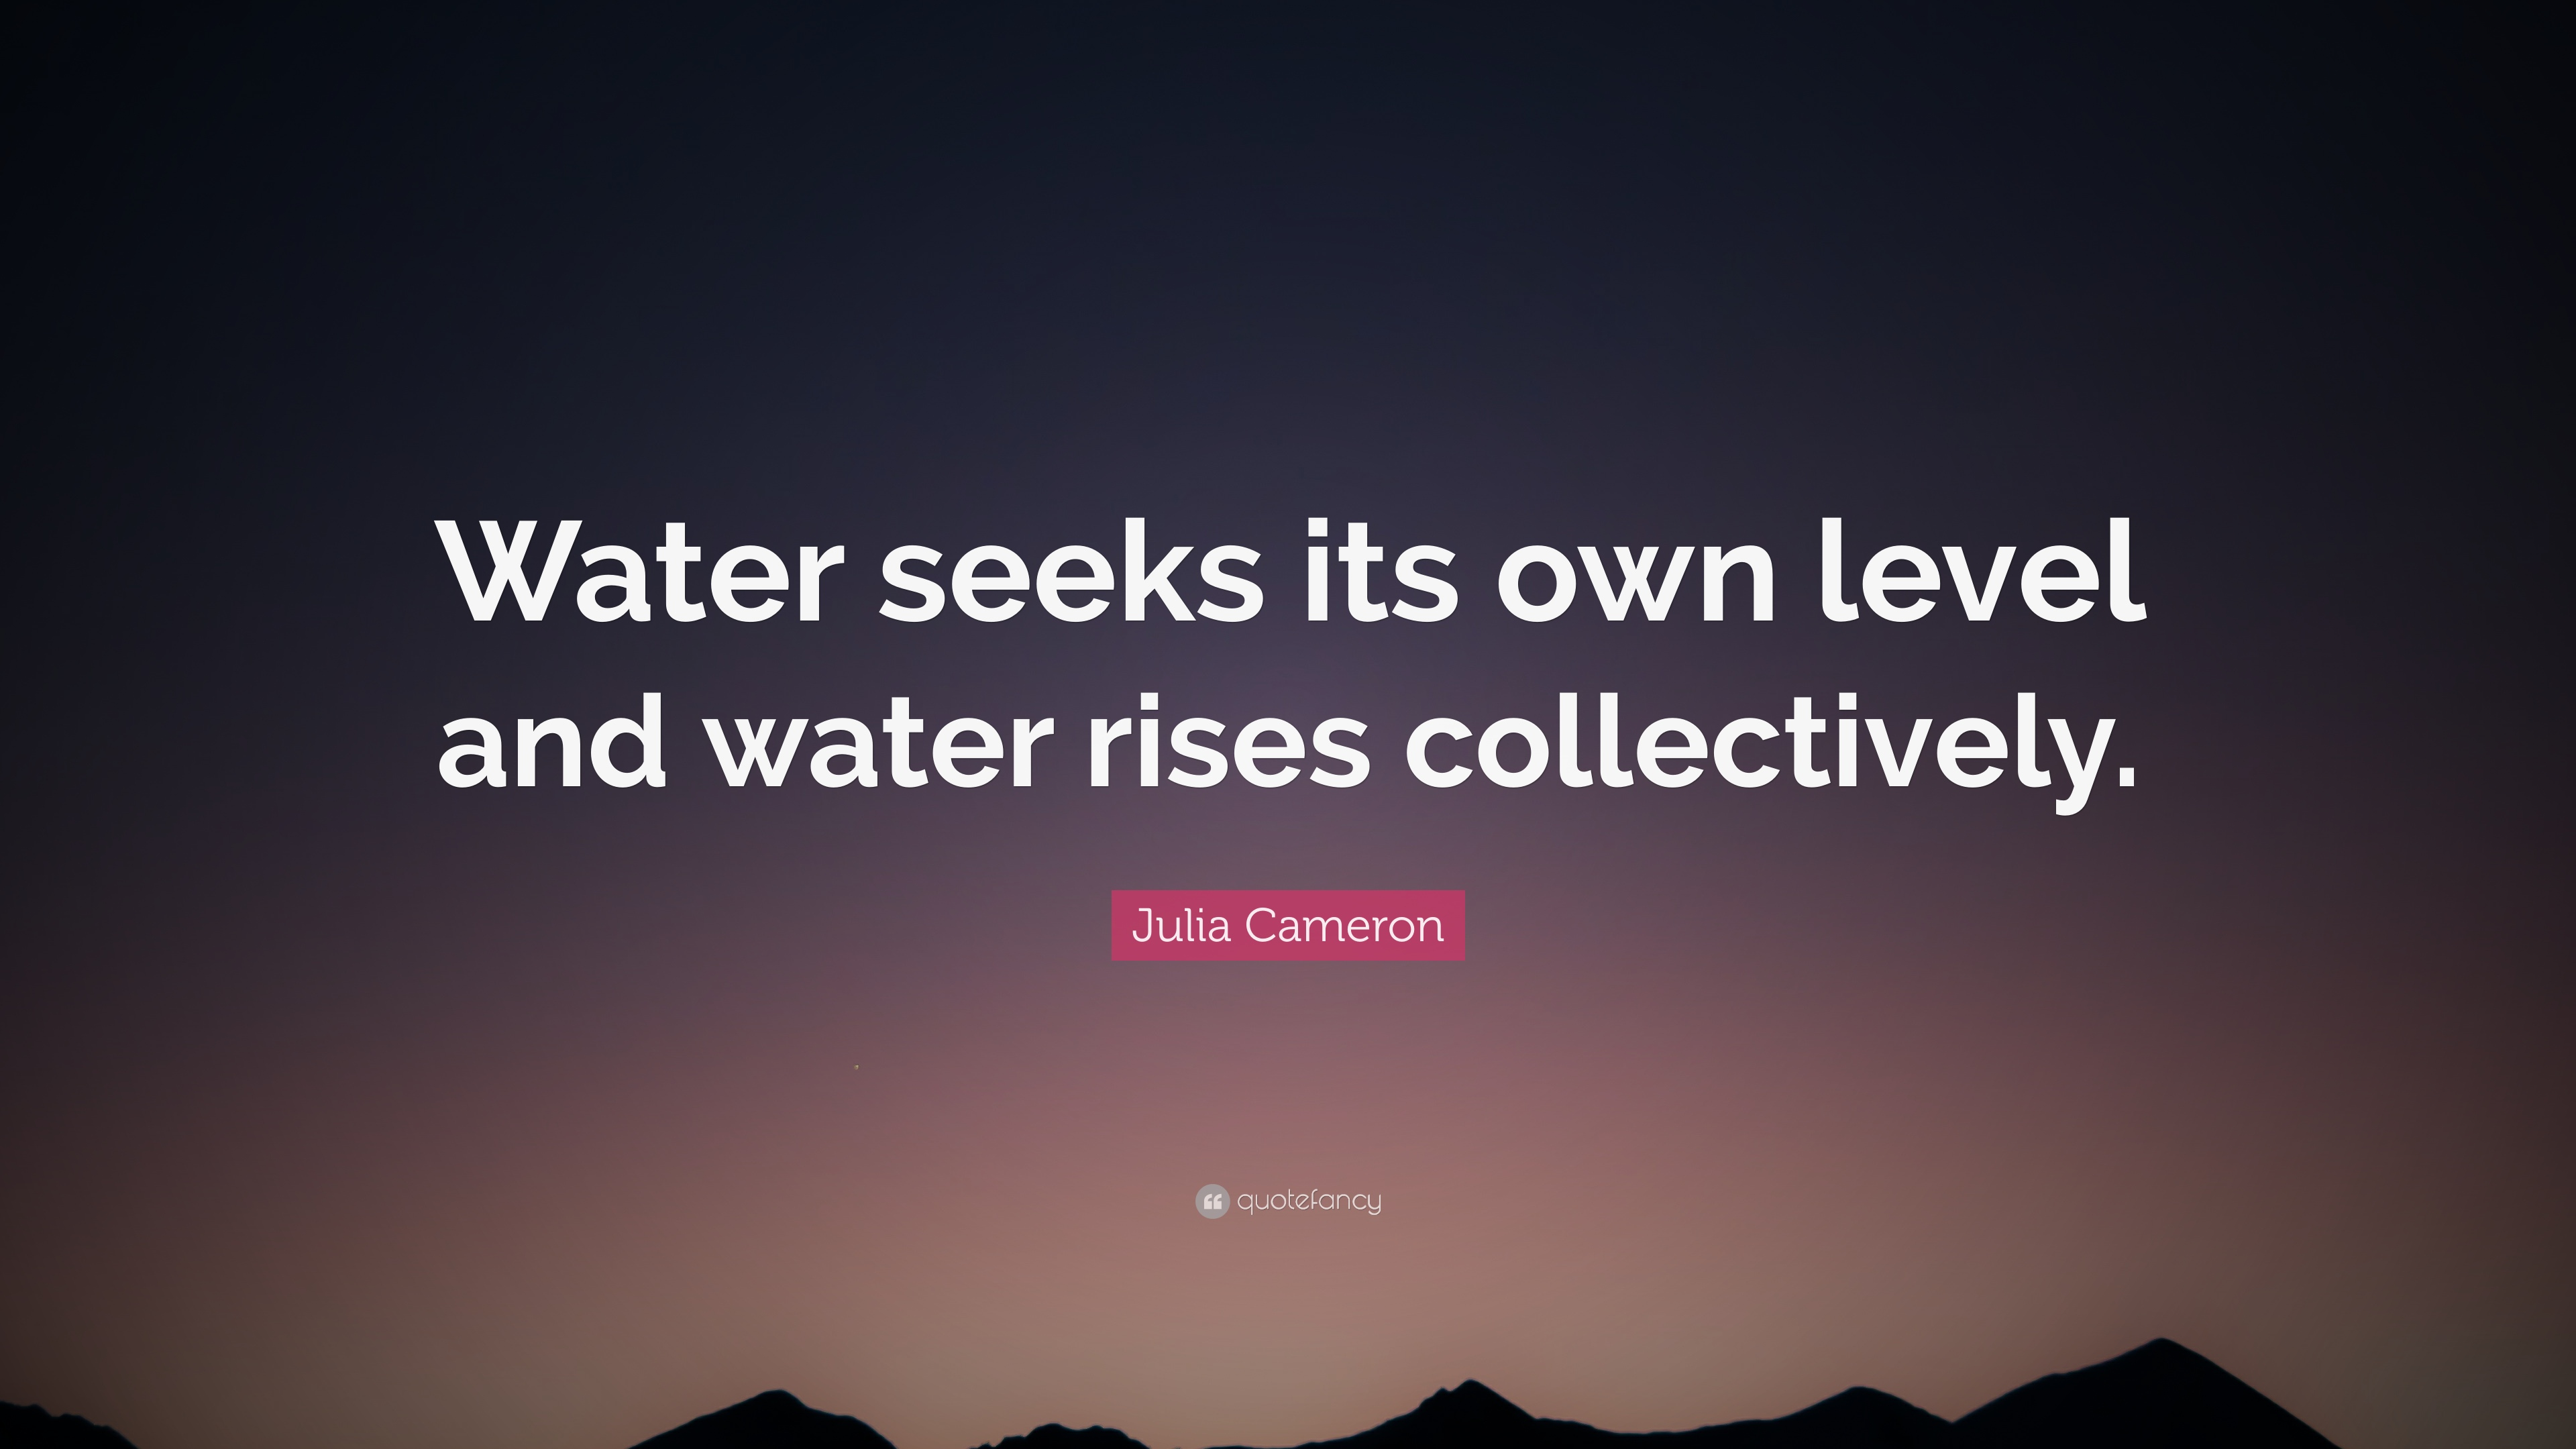 Water Quotes Quotes About Water 40 Wallpapers  Quotefancy